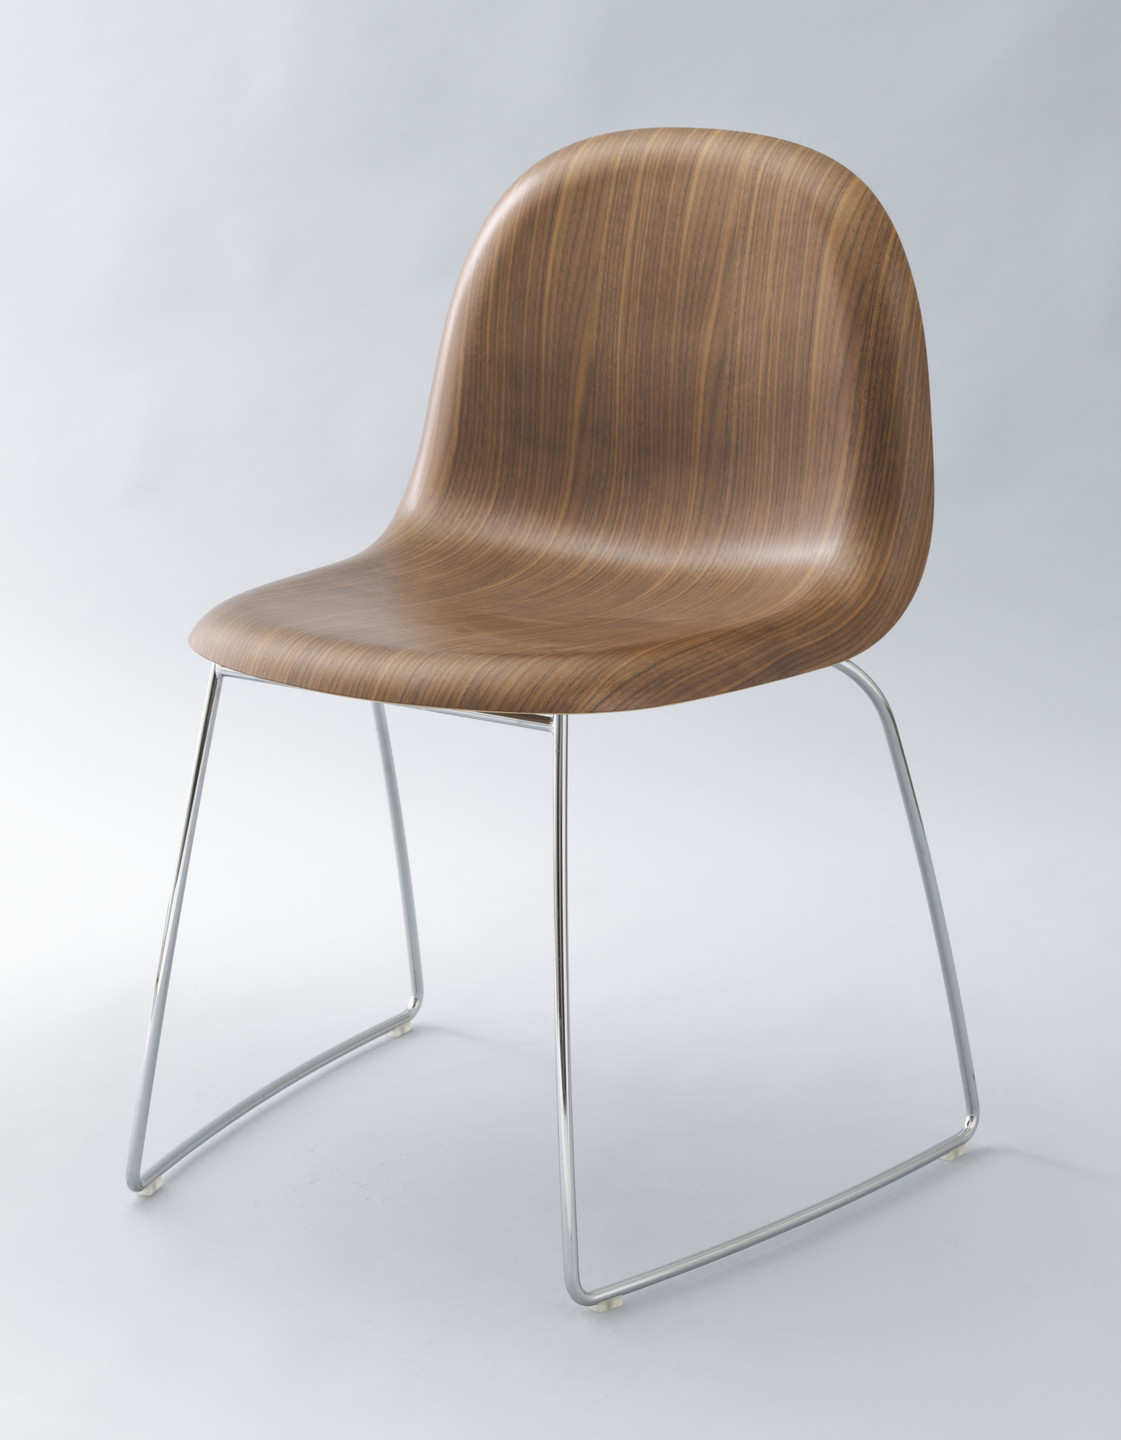 Komplot Design, Boris Berlin, Poul Christiansen. GUBI Chair. 2003